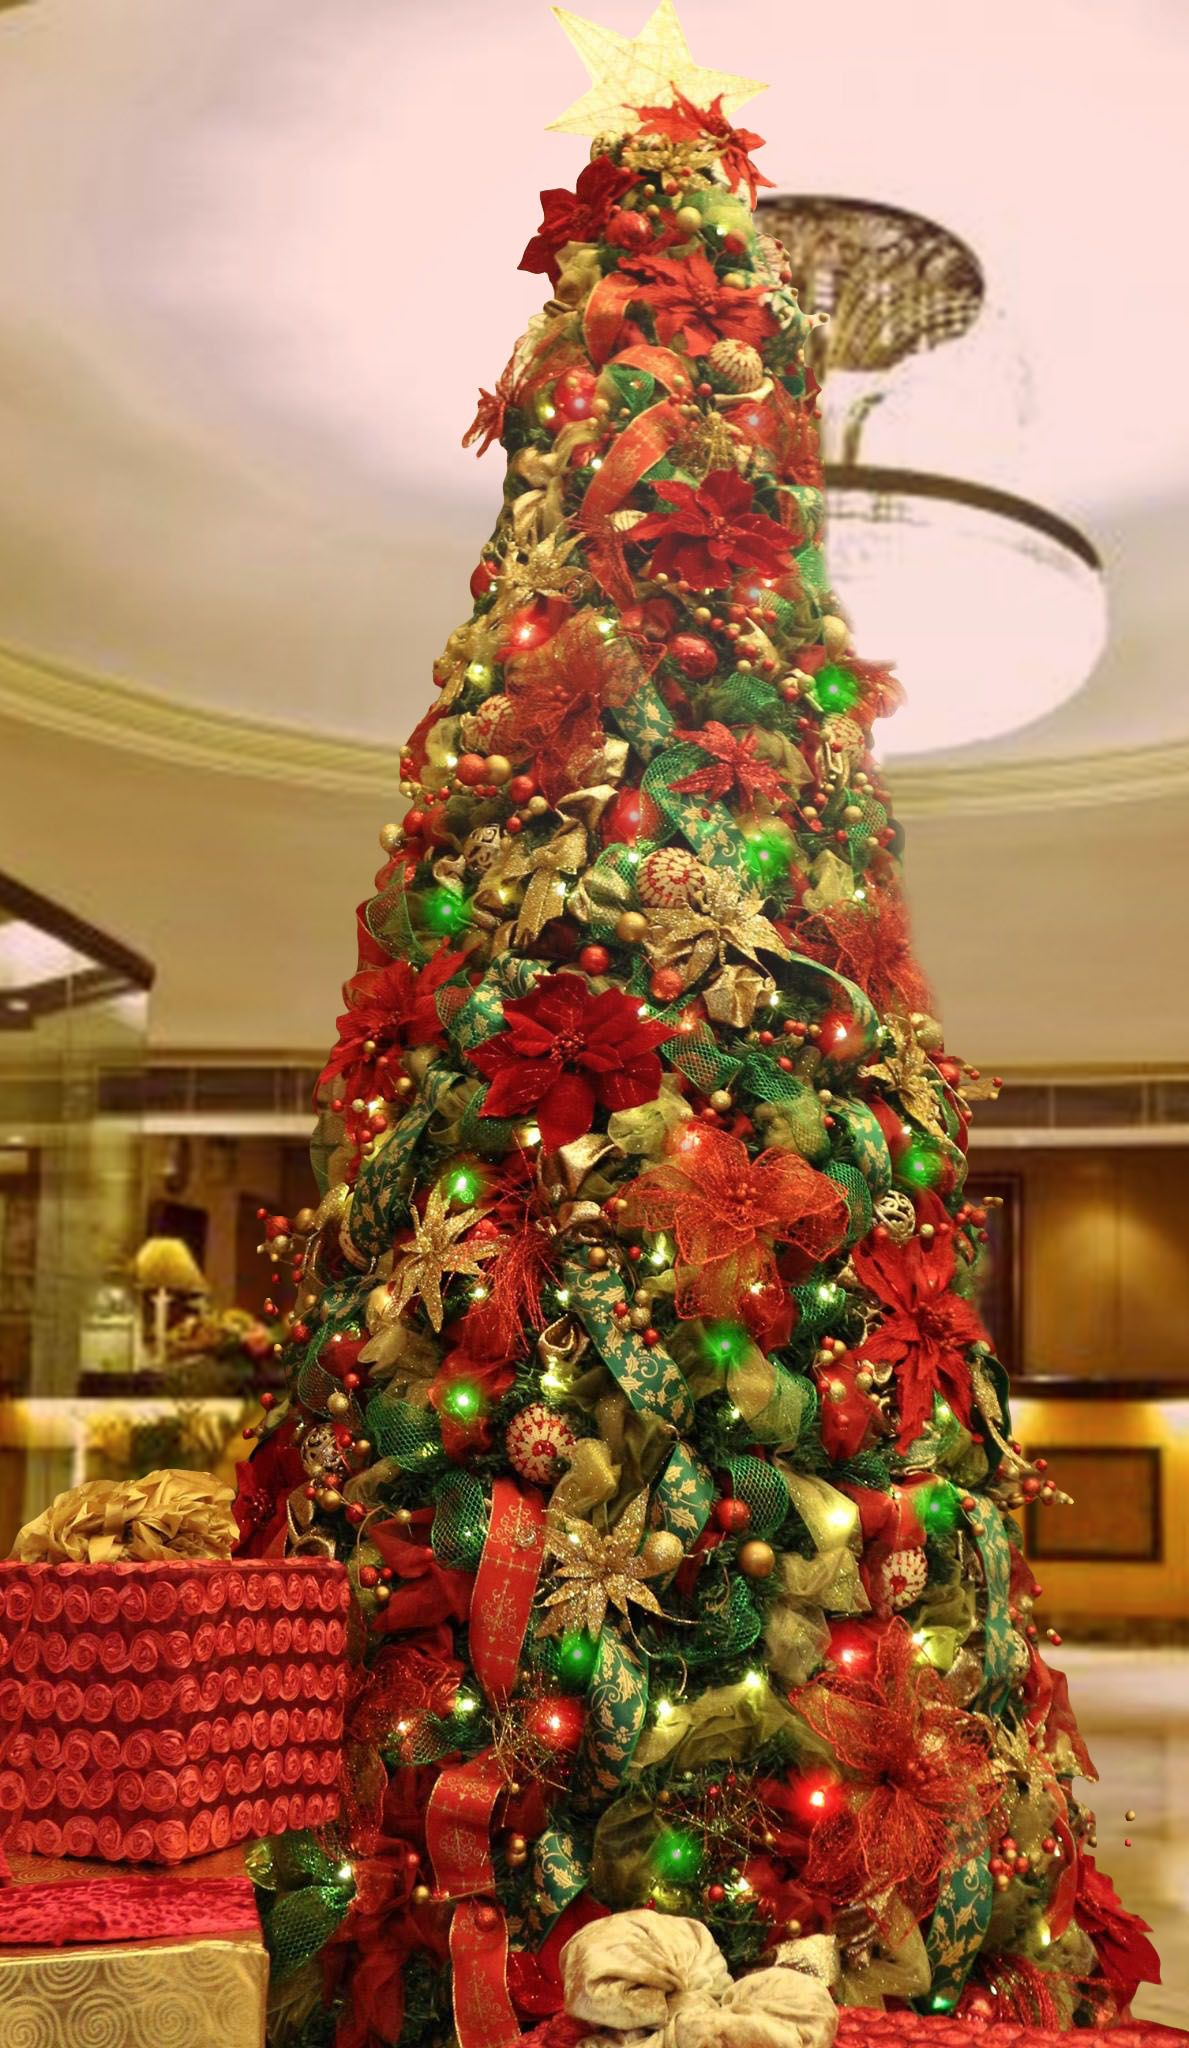 Inspiring christmas trees for hire. Our inspiring